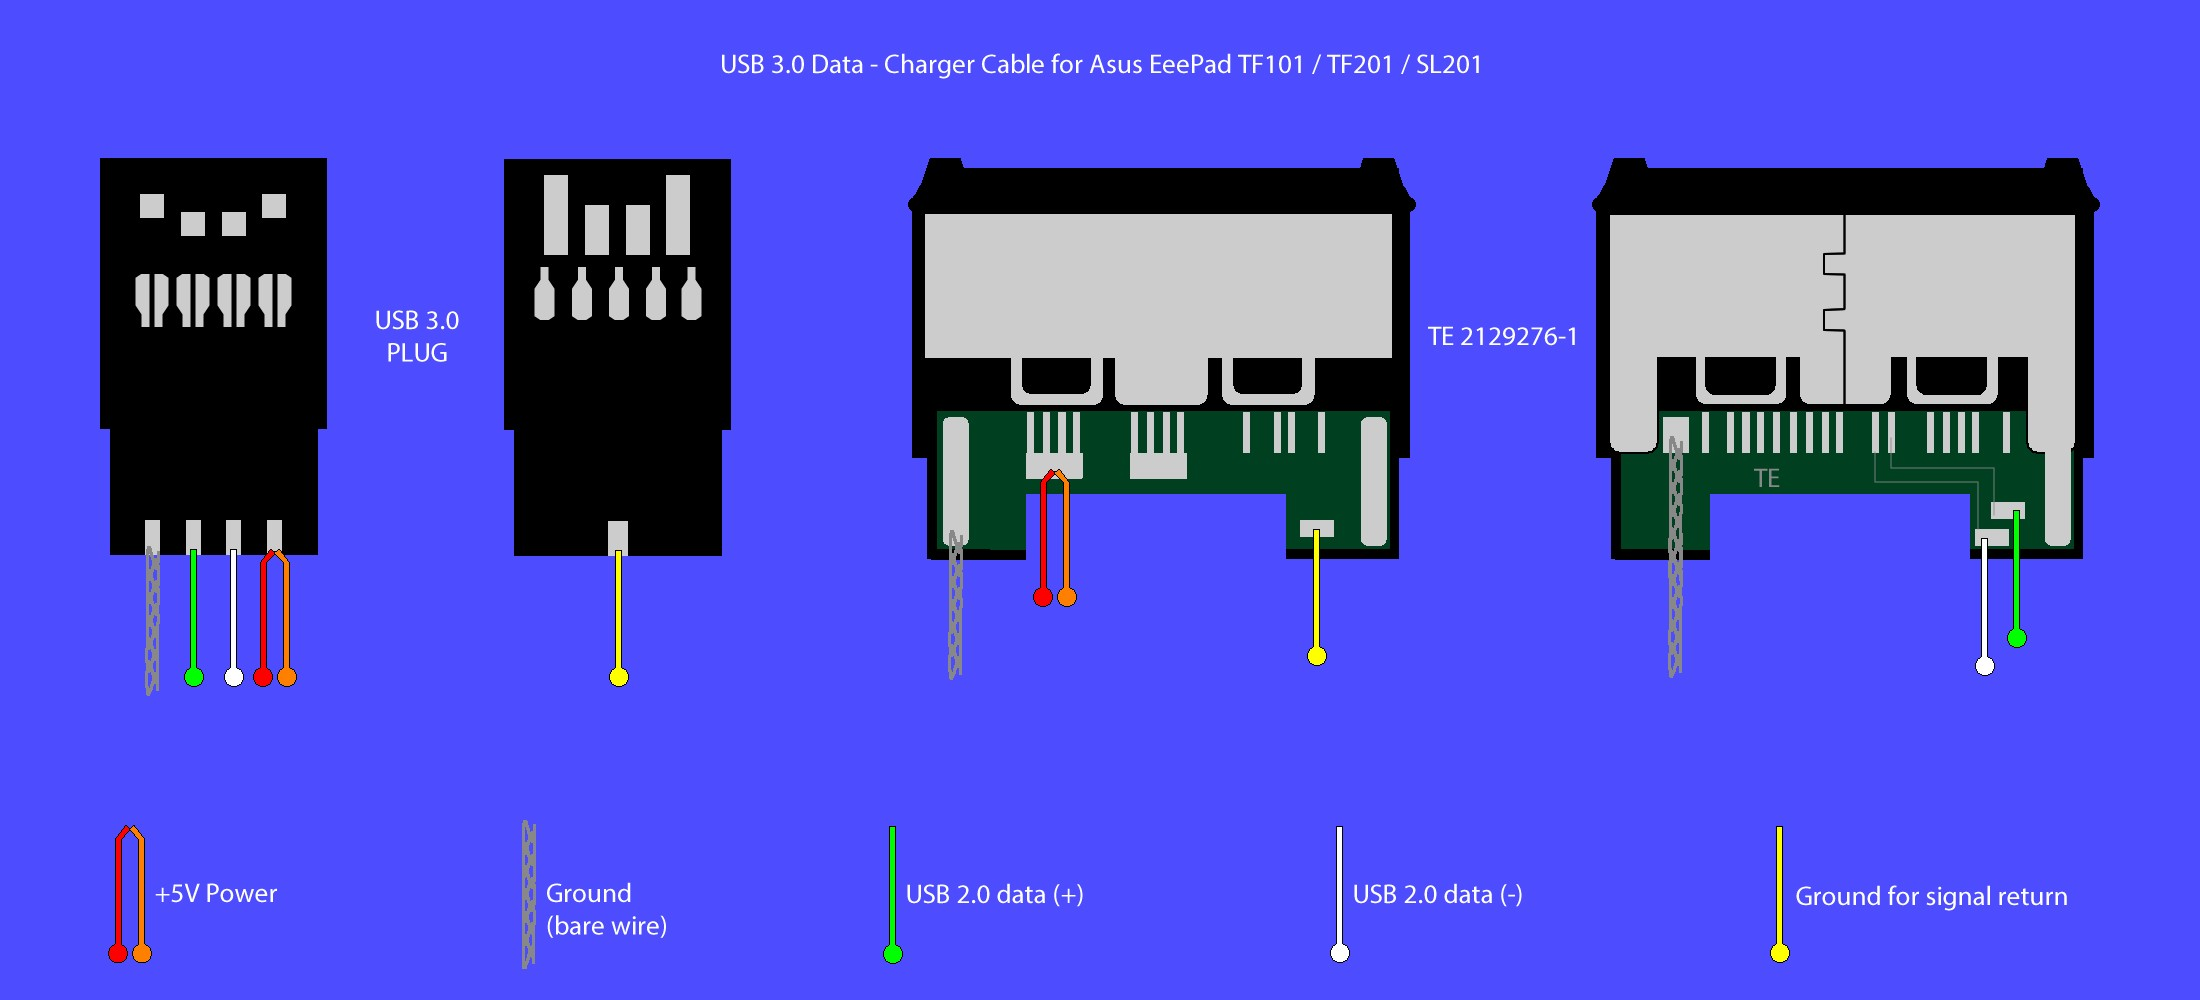 sata to usb wiring diagram best of wiring diagram image rh mainetreasurechest com USB Cable Pinout Diagram USB Type a Wiring Diagram